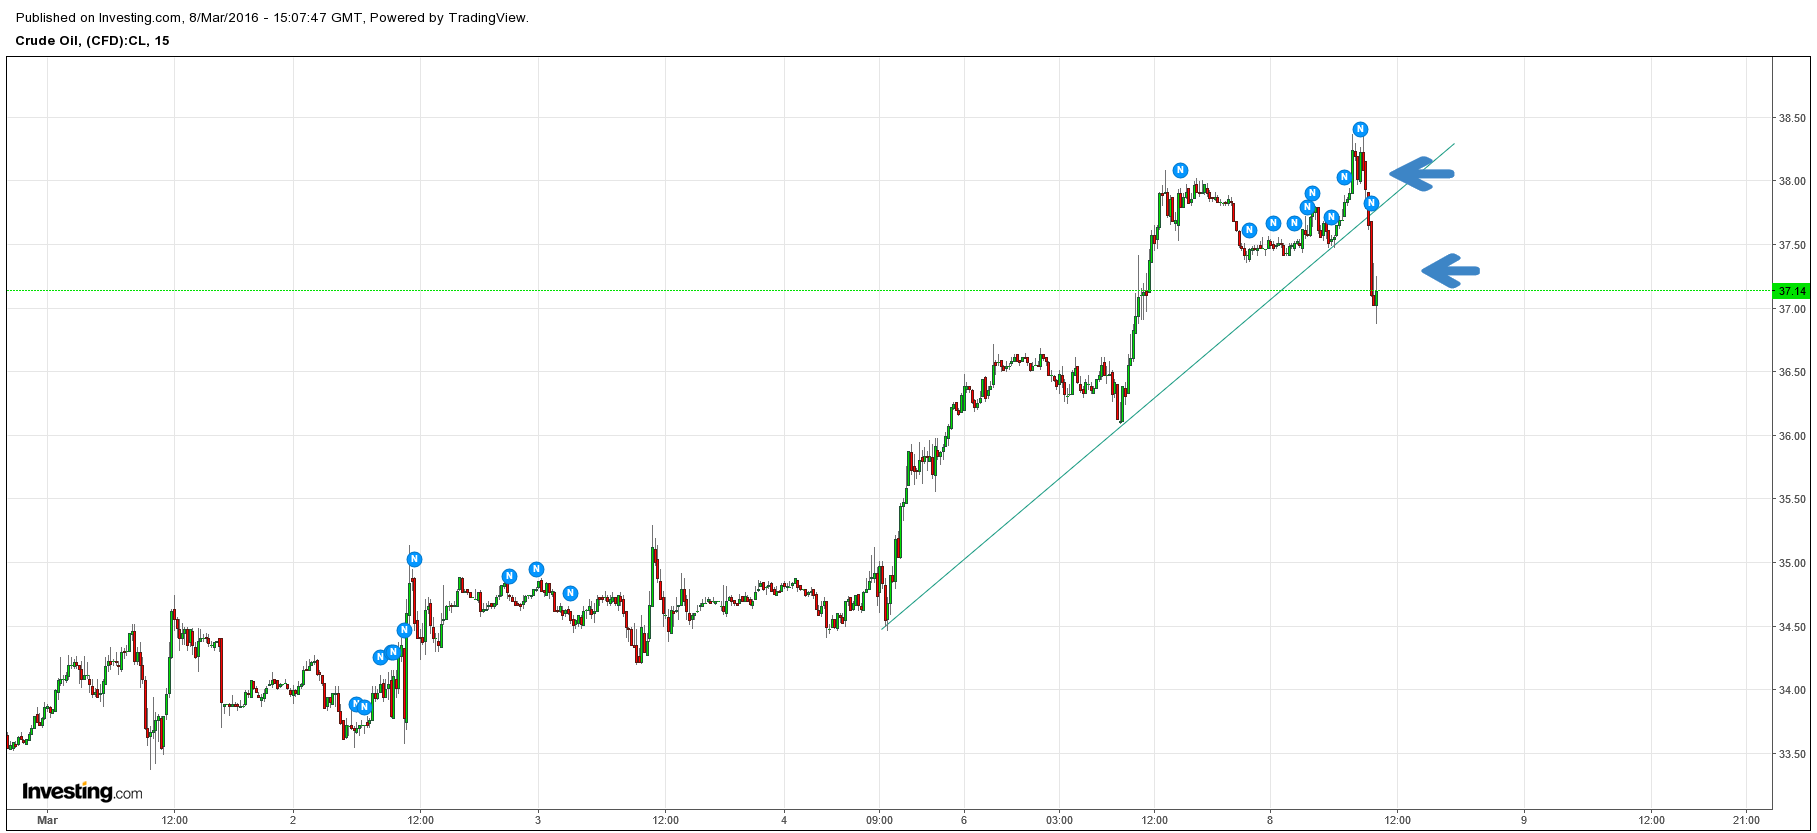 Crude's reversal back down under 38 coincided with Equities following suit